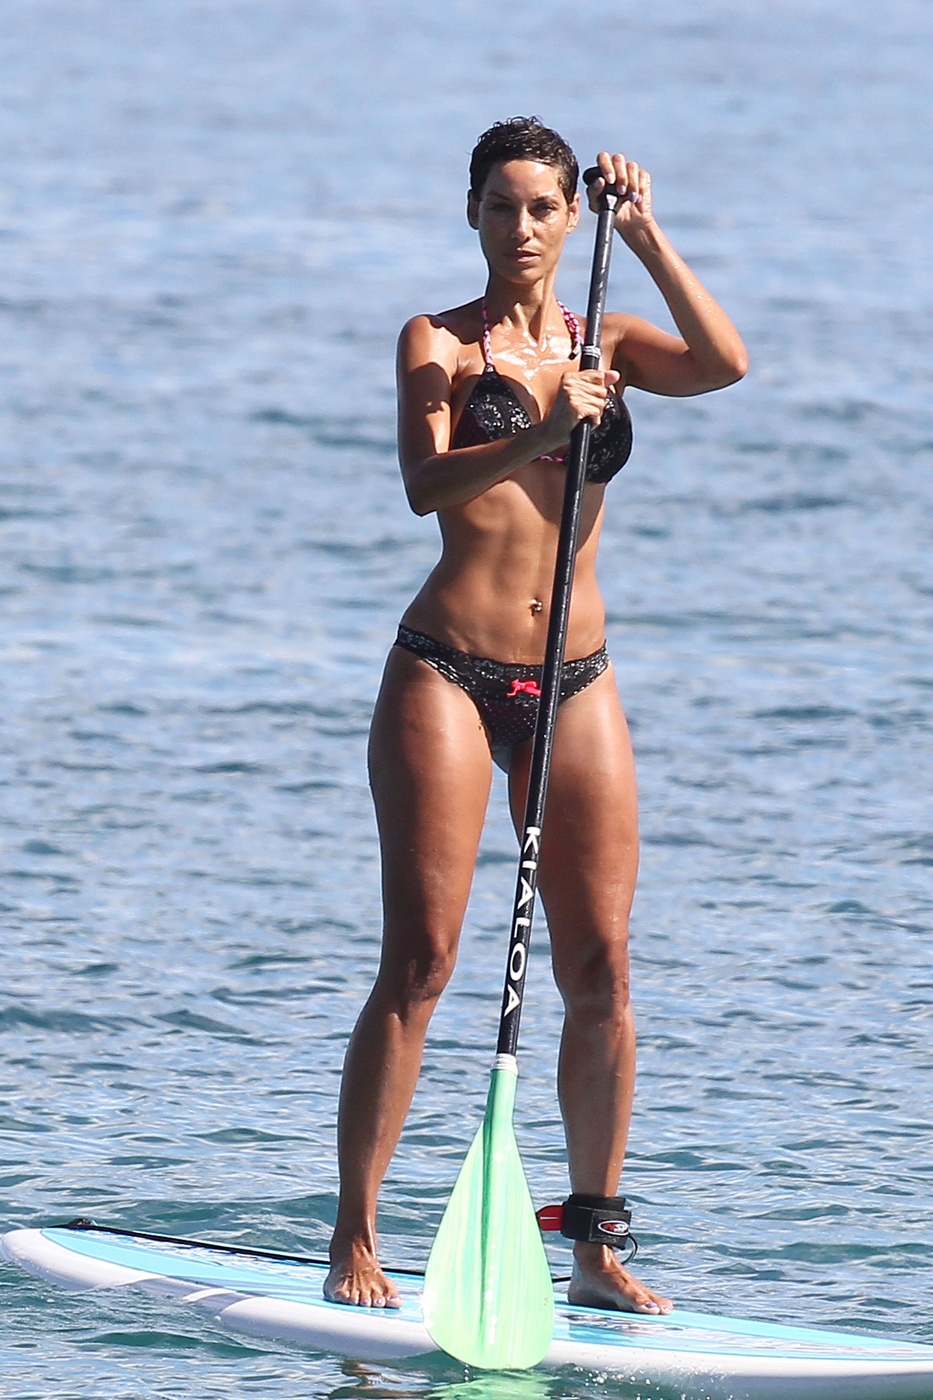 Nicole Murphy In A Bikini Paddleboarding At The Beach 08